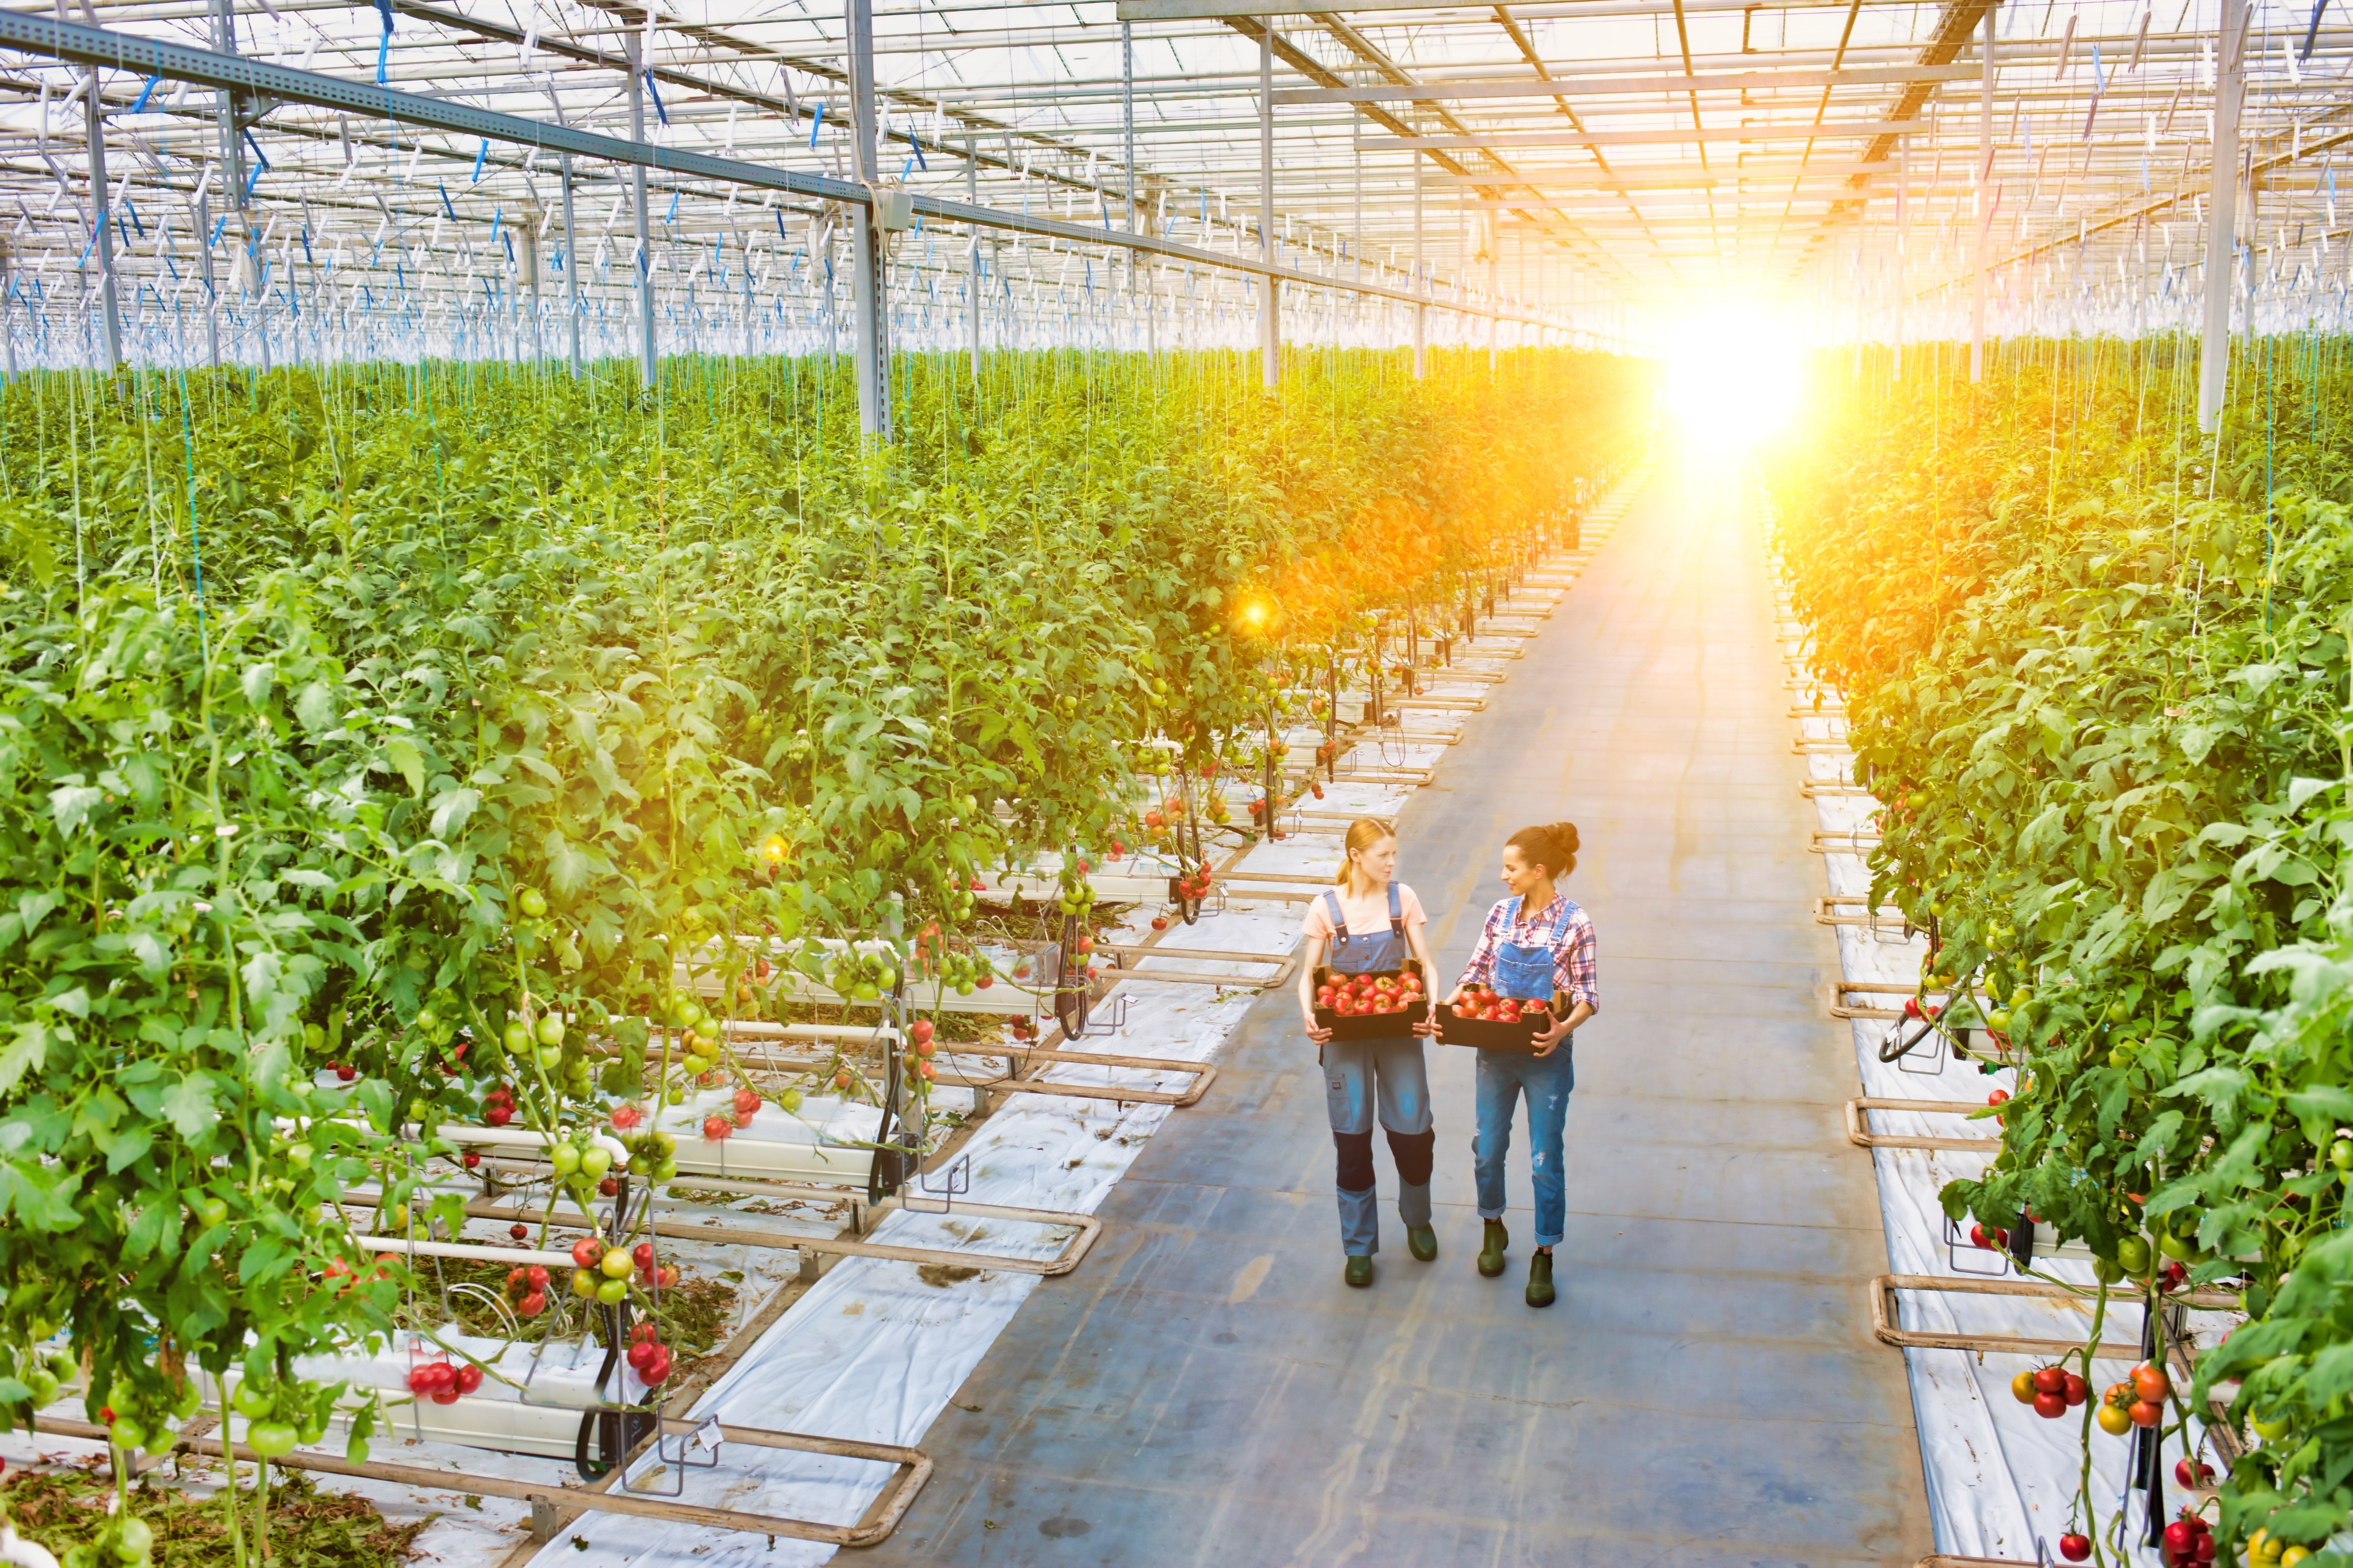 Two growers walk within a greenhouse